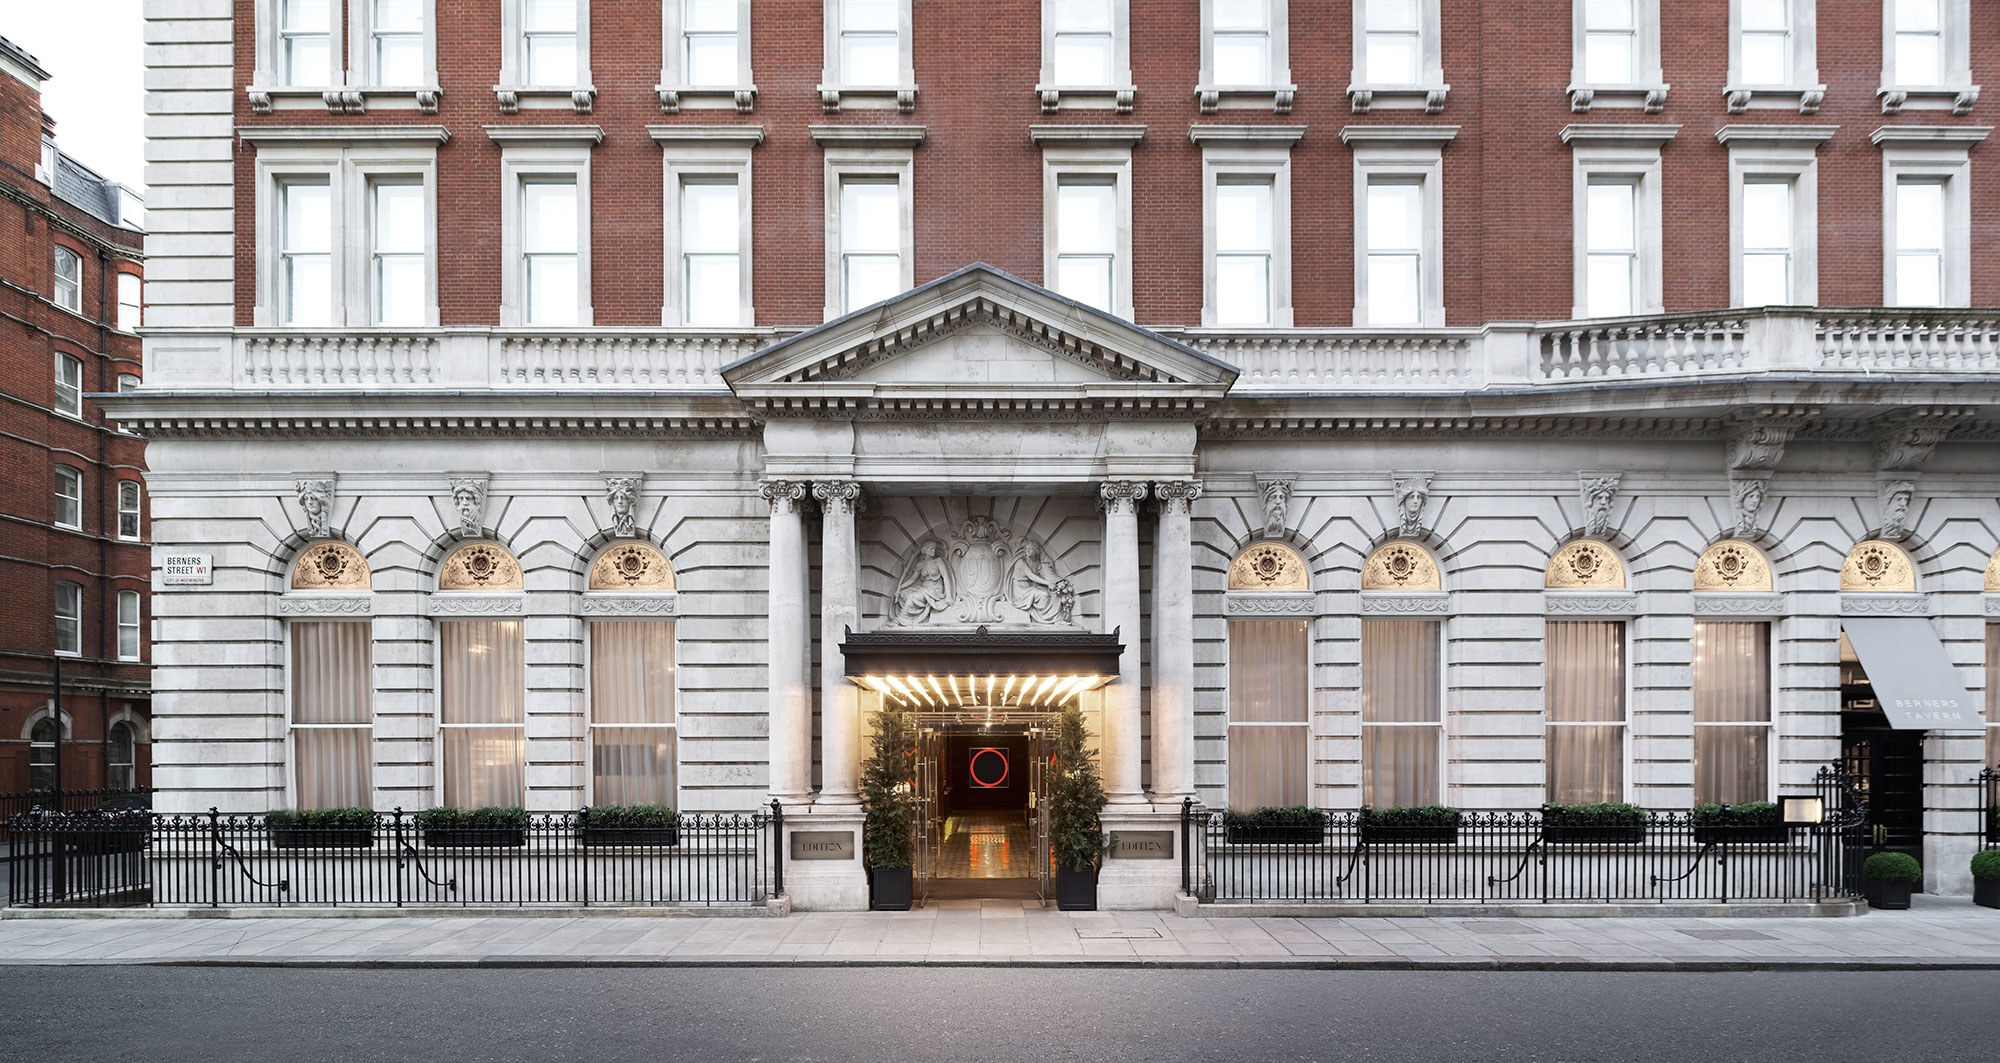 London Edition is the perfect fun hotel